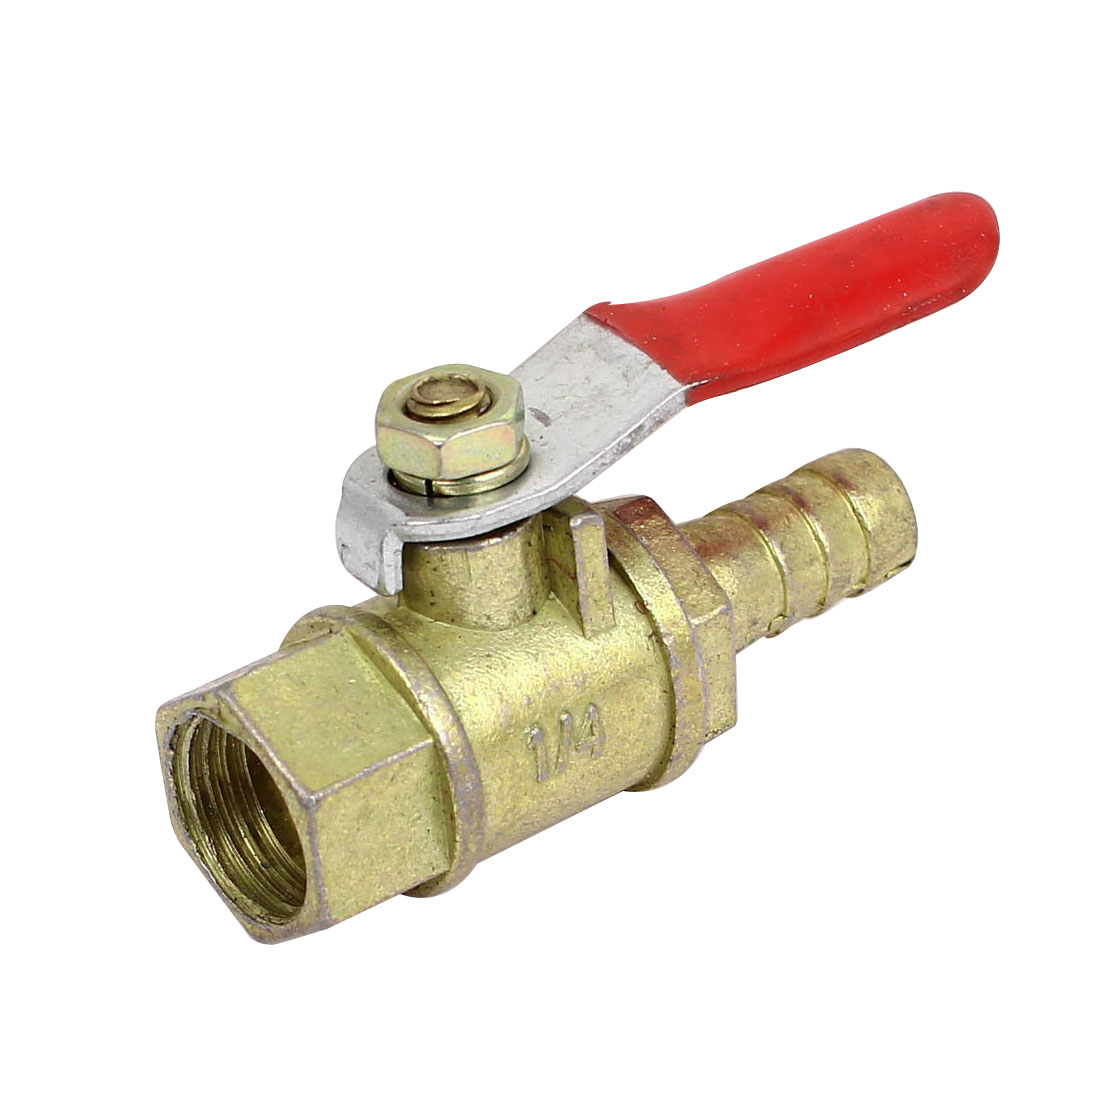 1/4BSP Female Thread 8mm Barb Tail Ball Valve Connector Pneumatic Brass Fitting